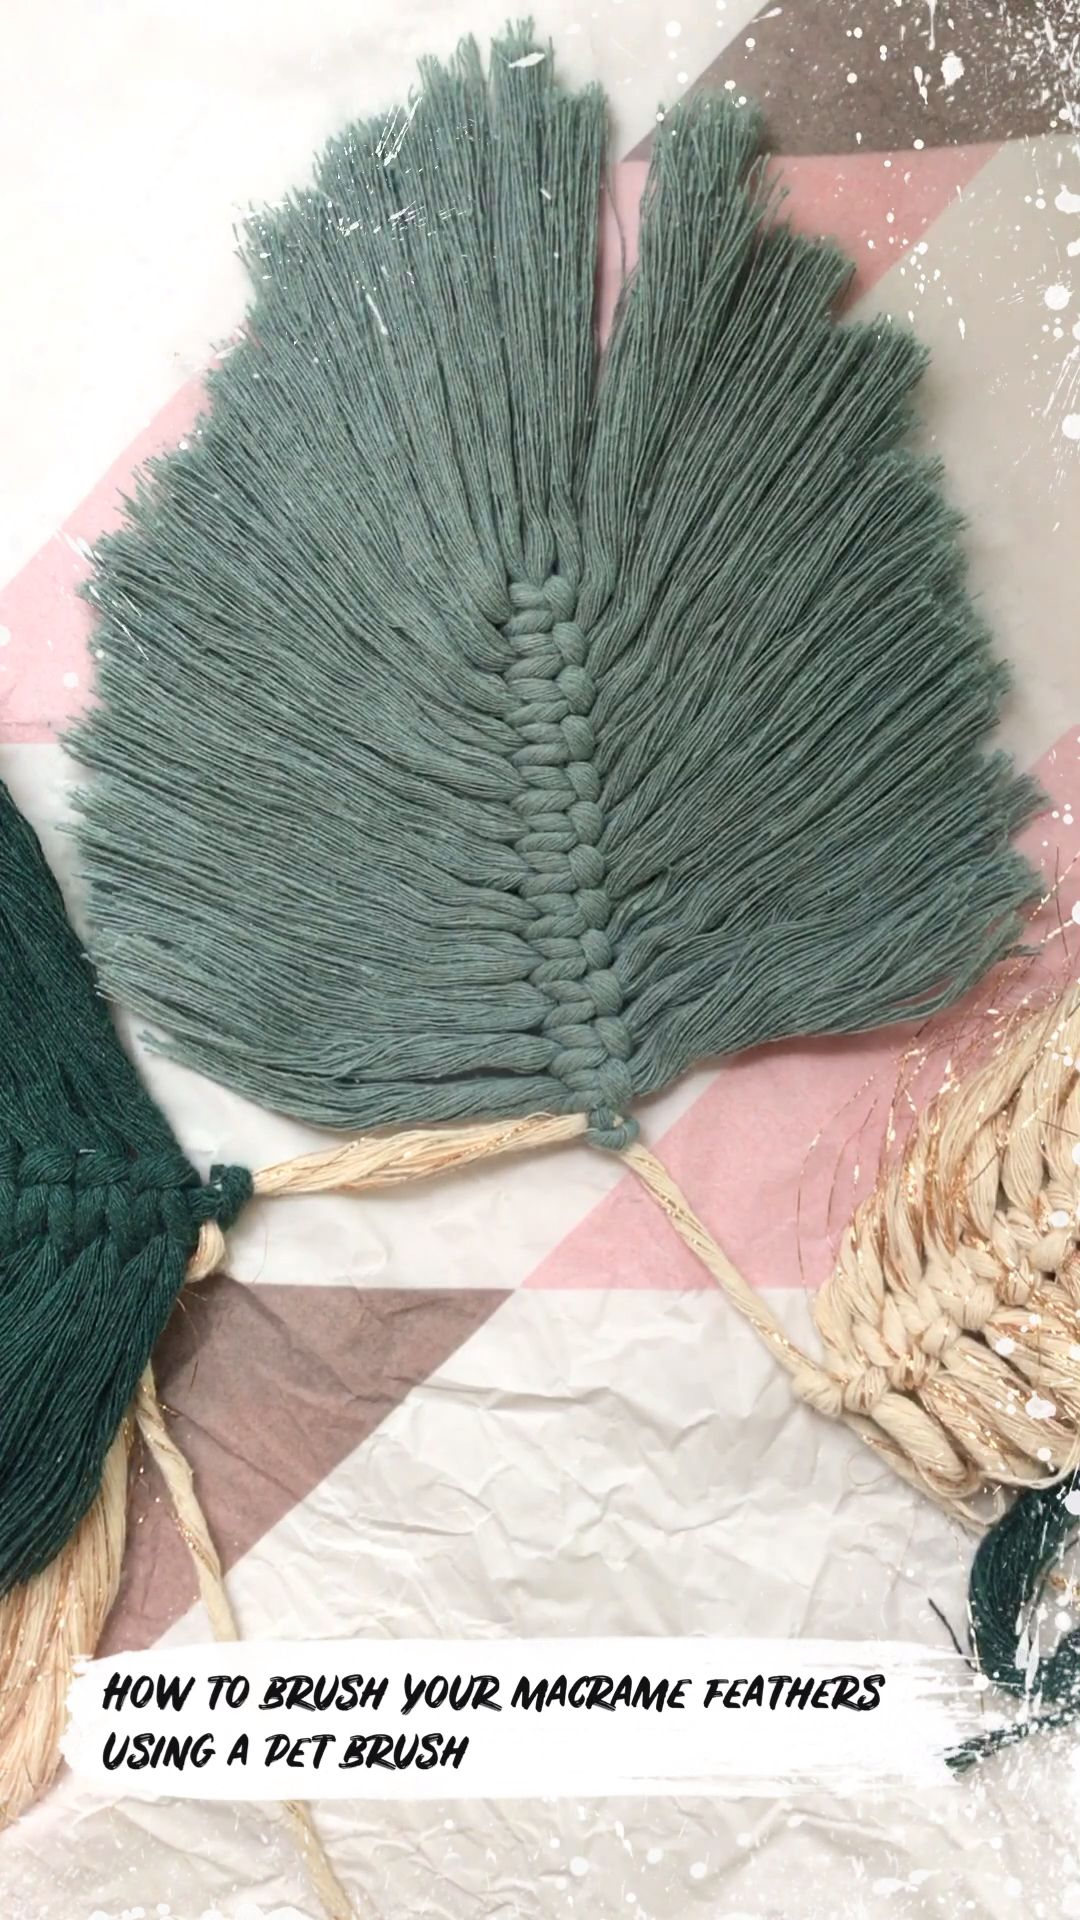 How to brush a macramé feather